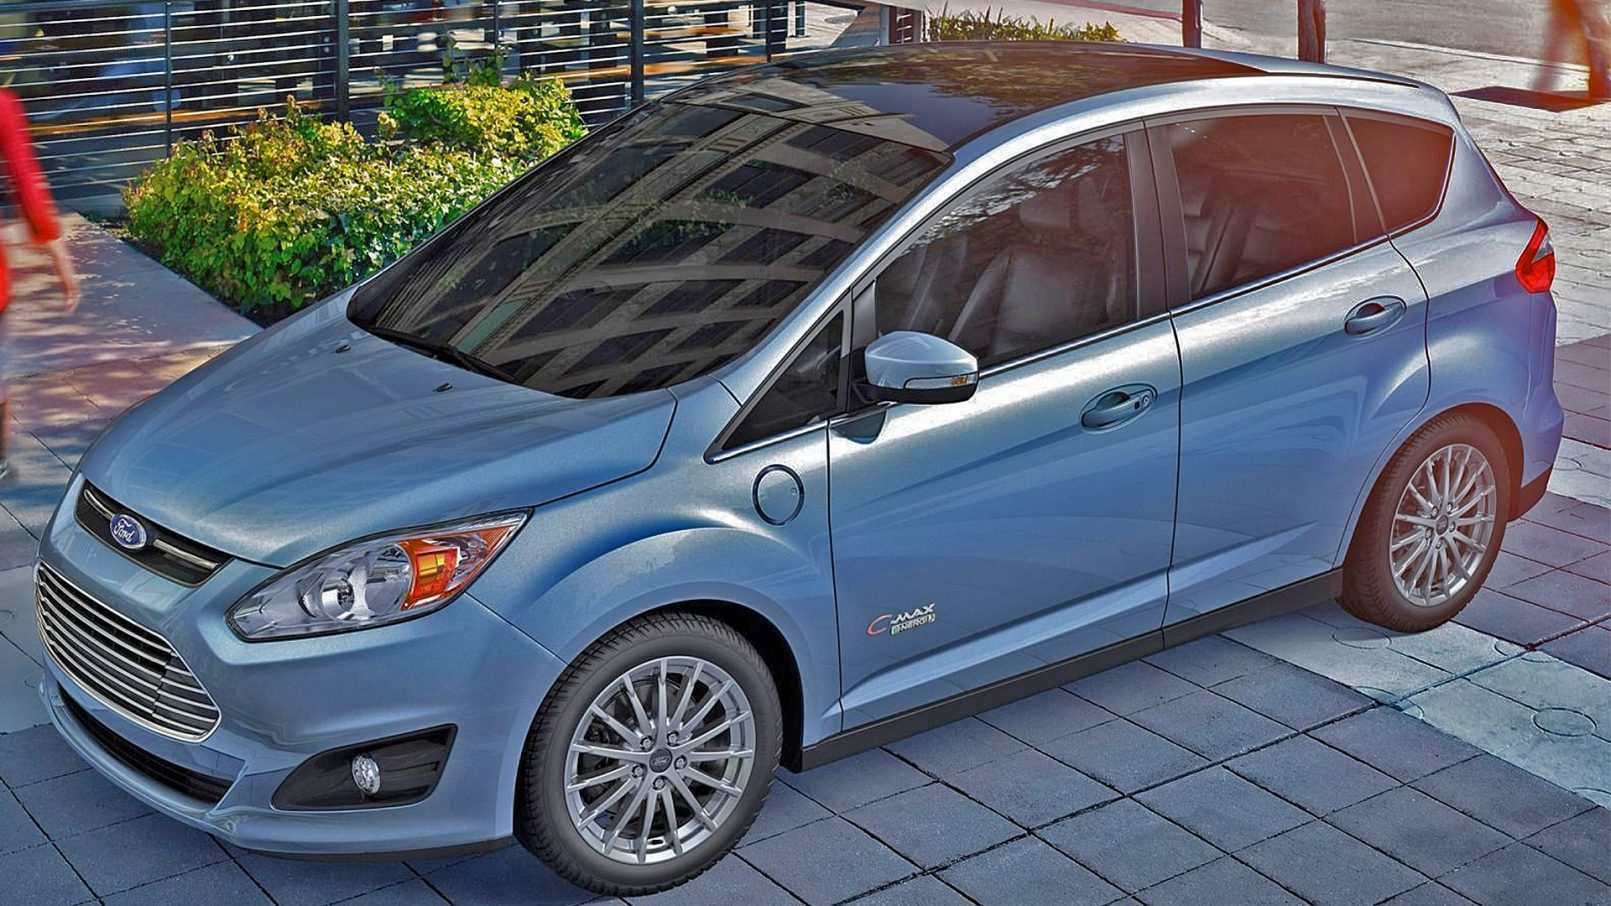 59 Best 2019 Ford C Max Research New